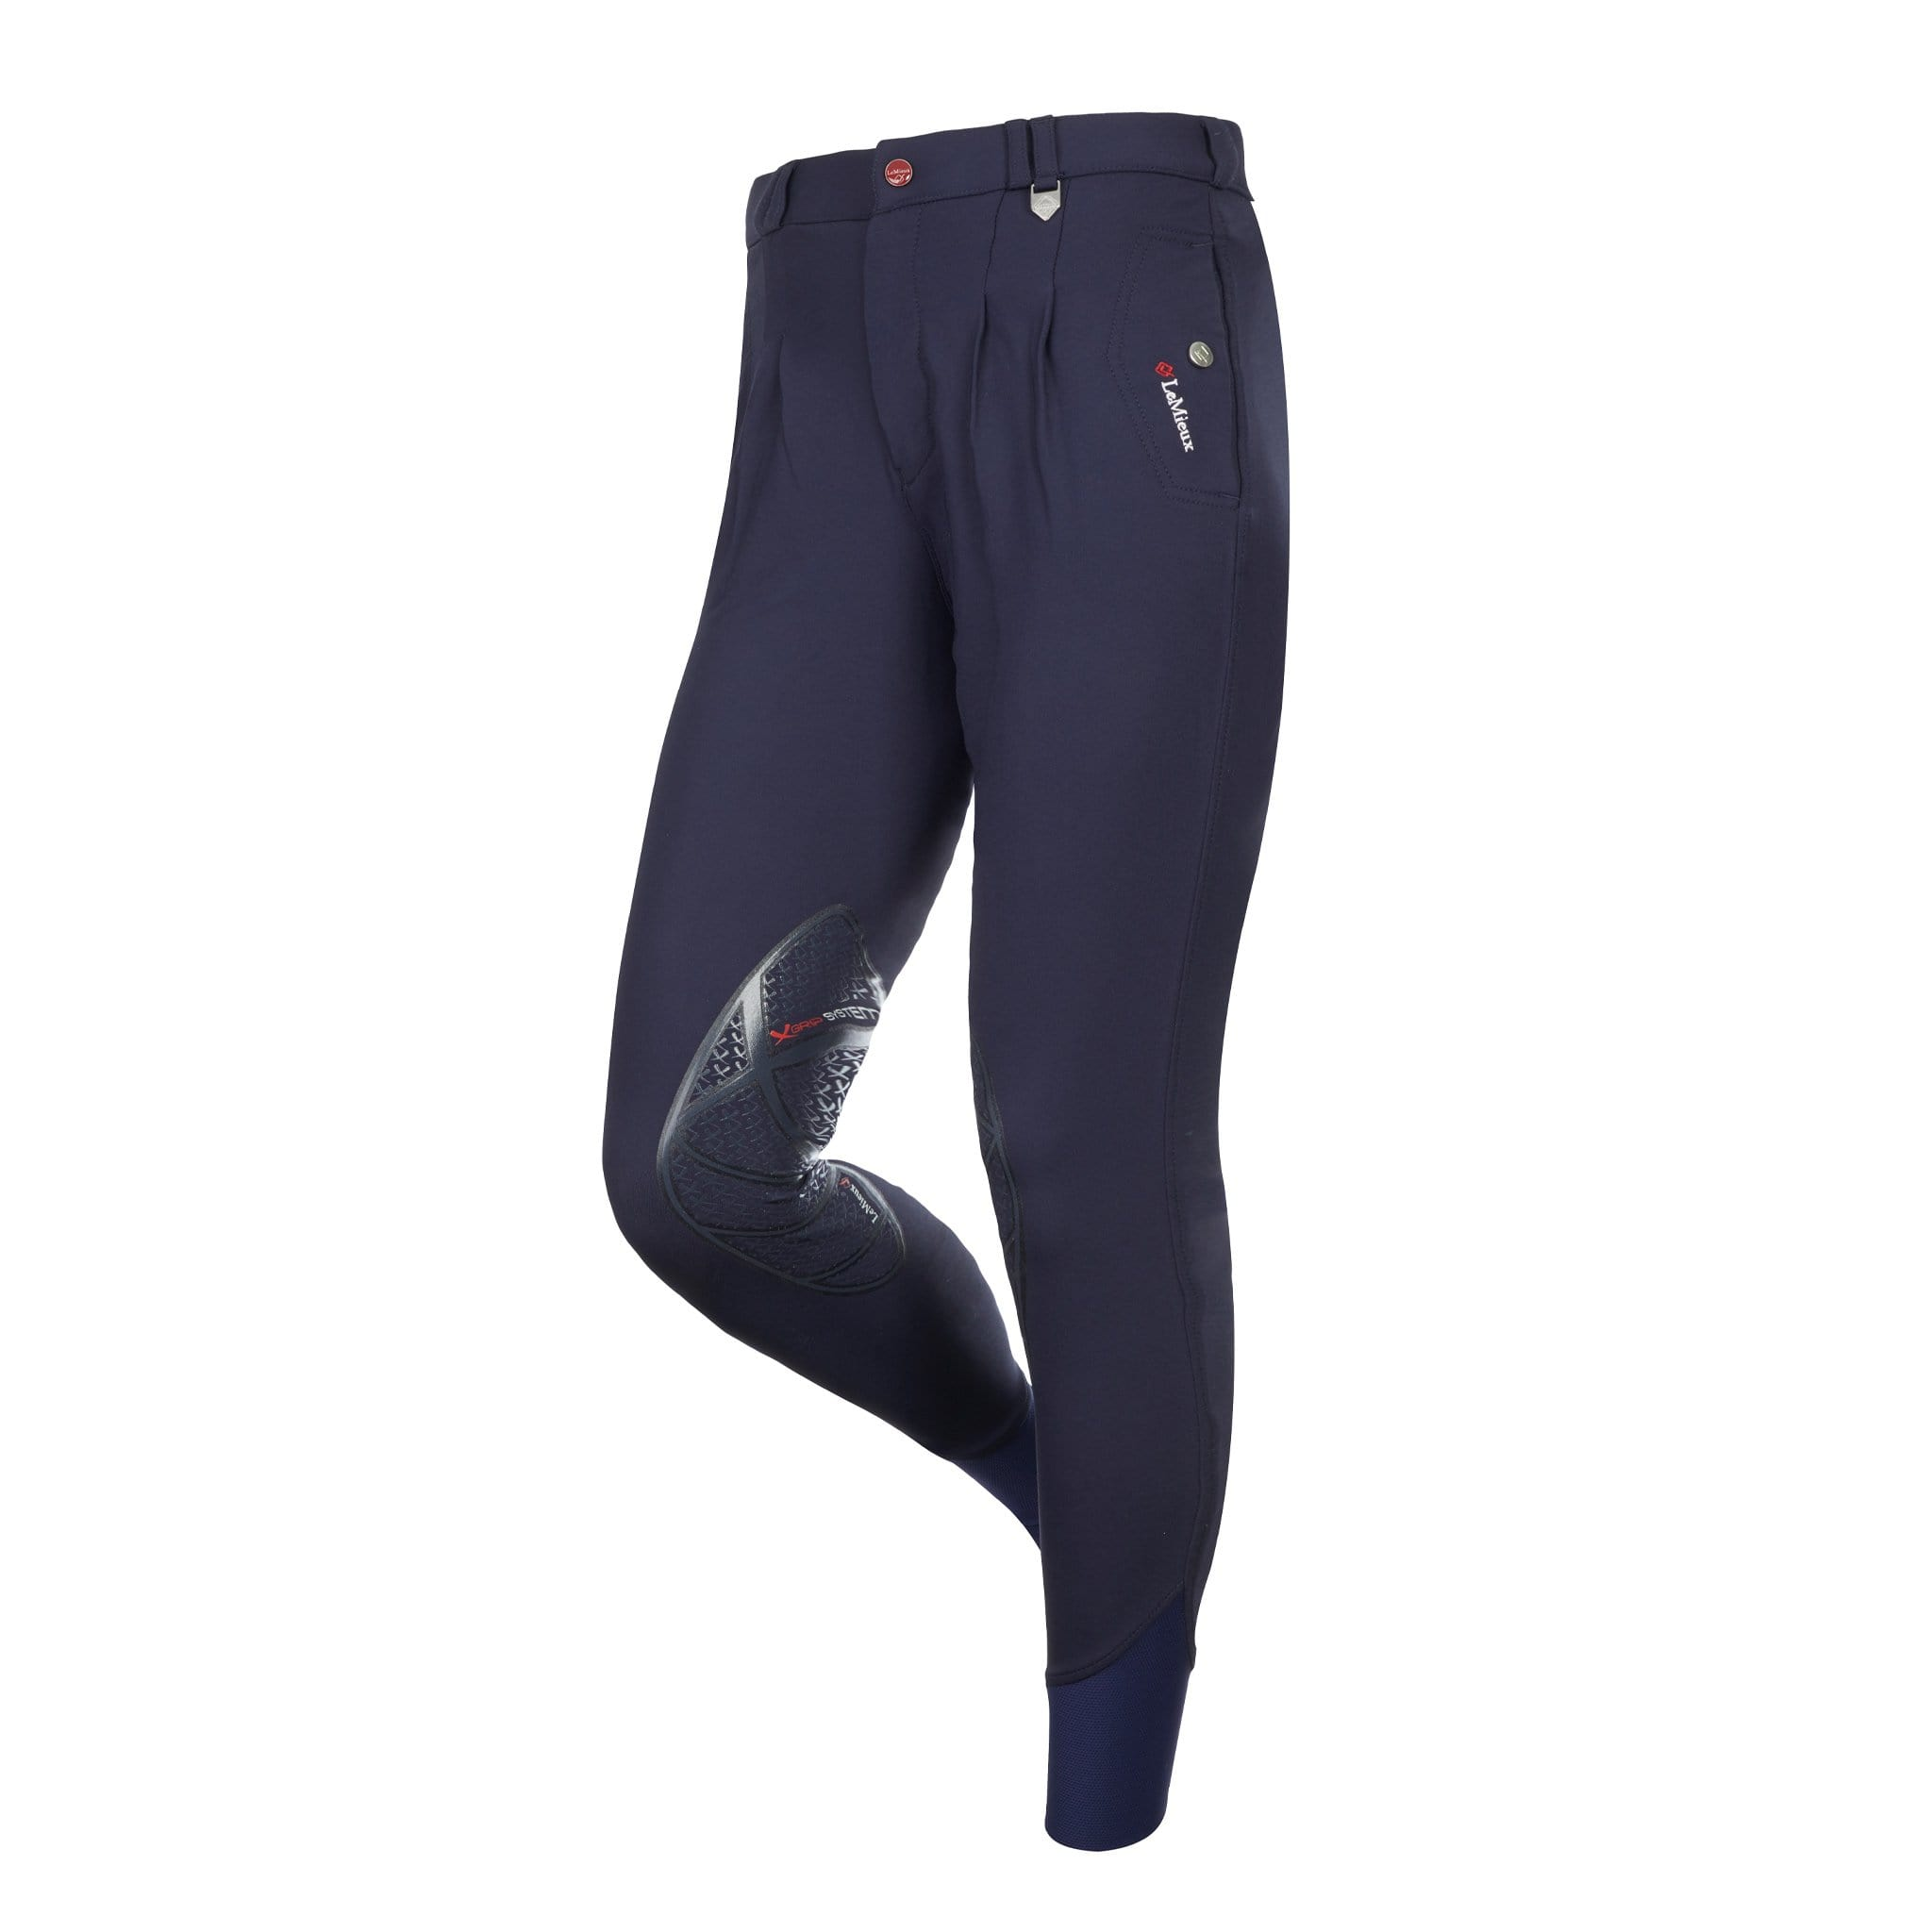 6435 LeMieux Men's Lugano Silicone Knee Patch Breeches Indigo (Navy)